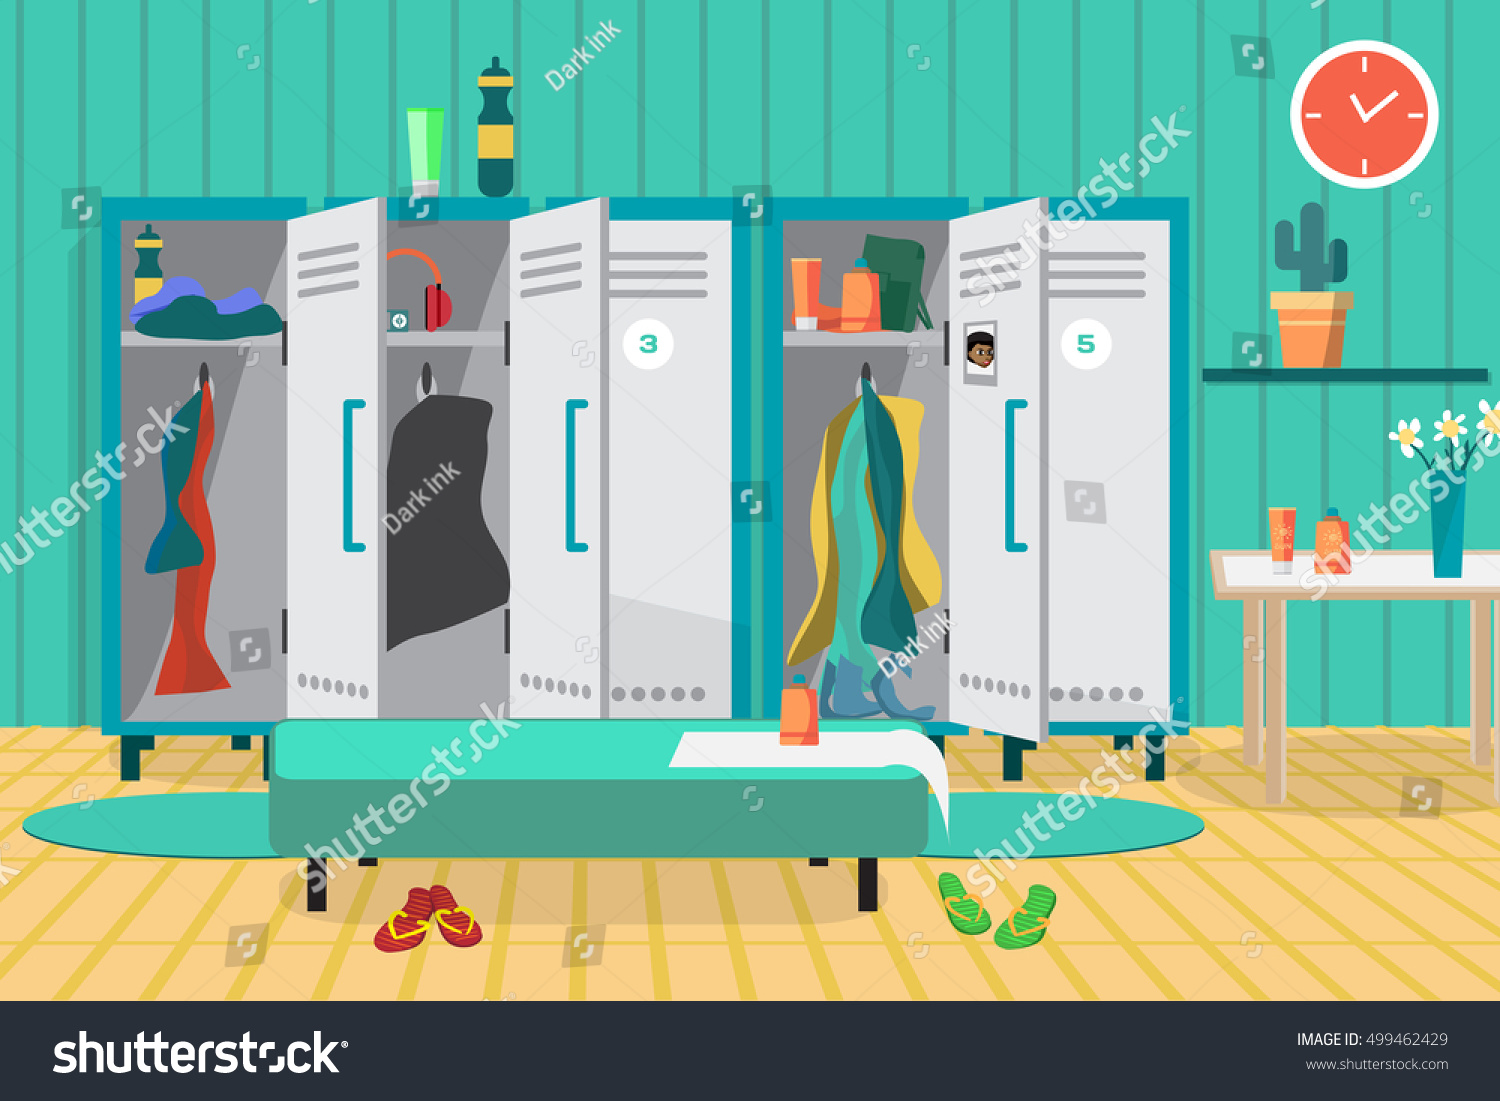 Interior gym locker room dressing place stock vector